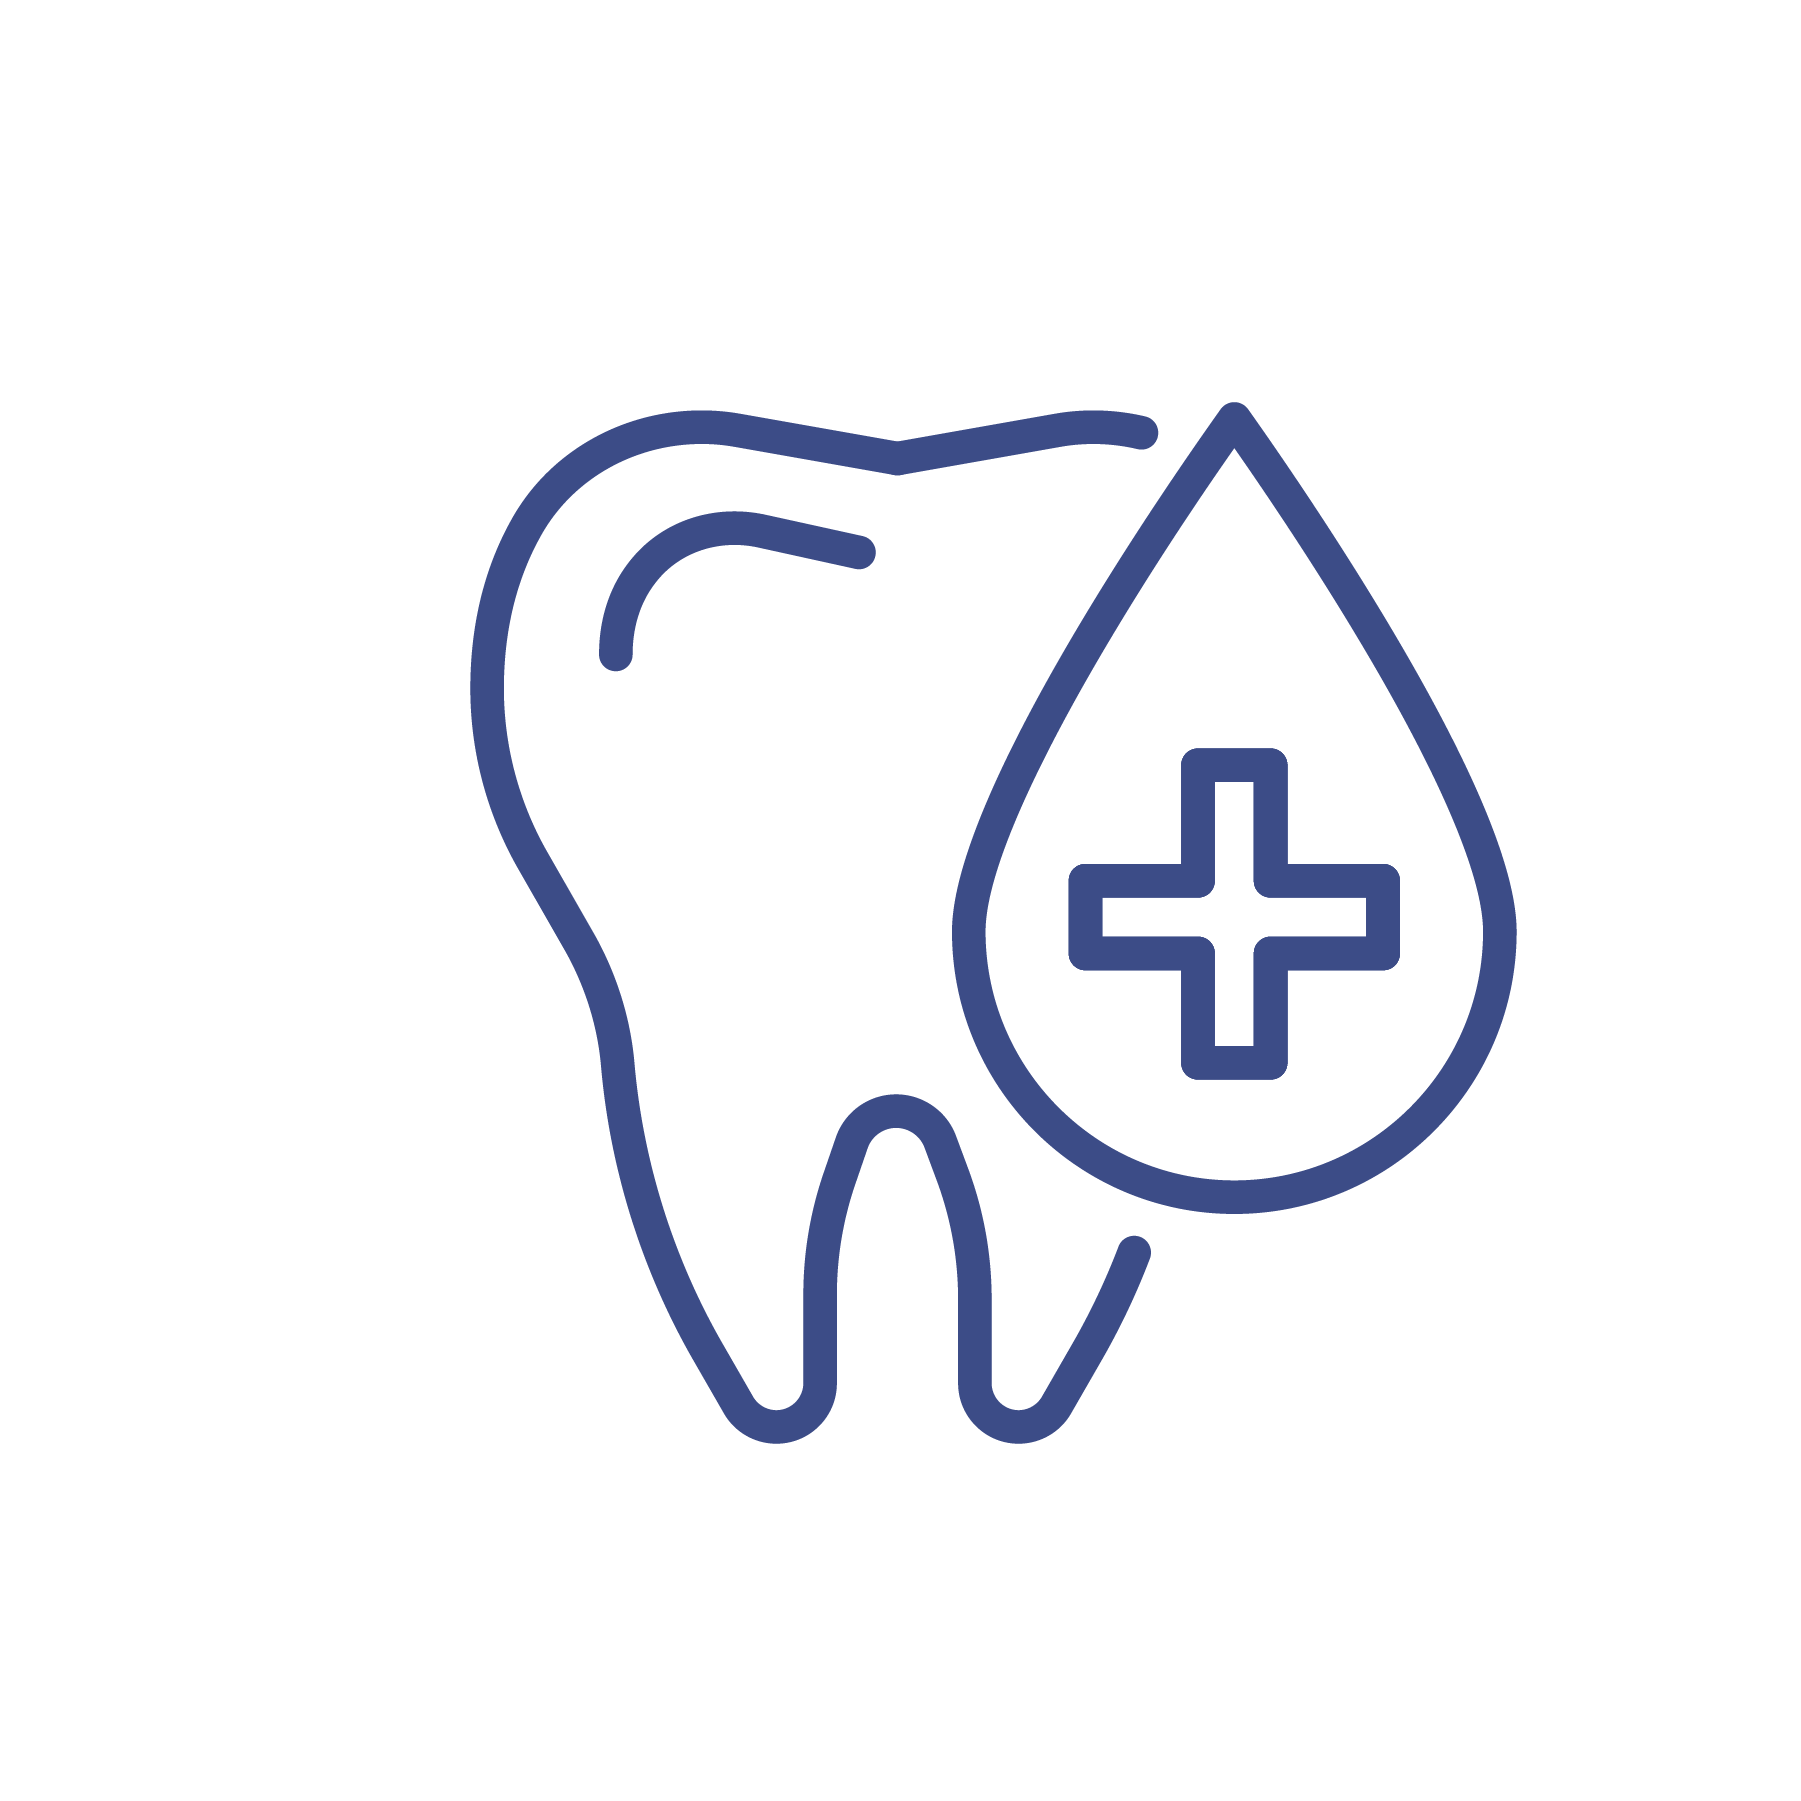 Tooth health icon